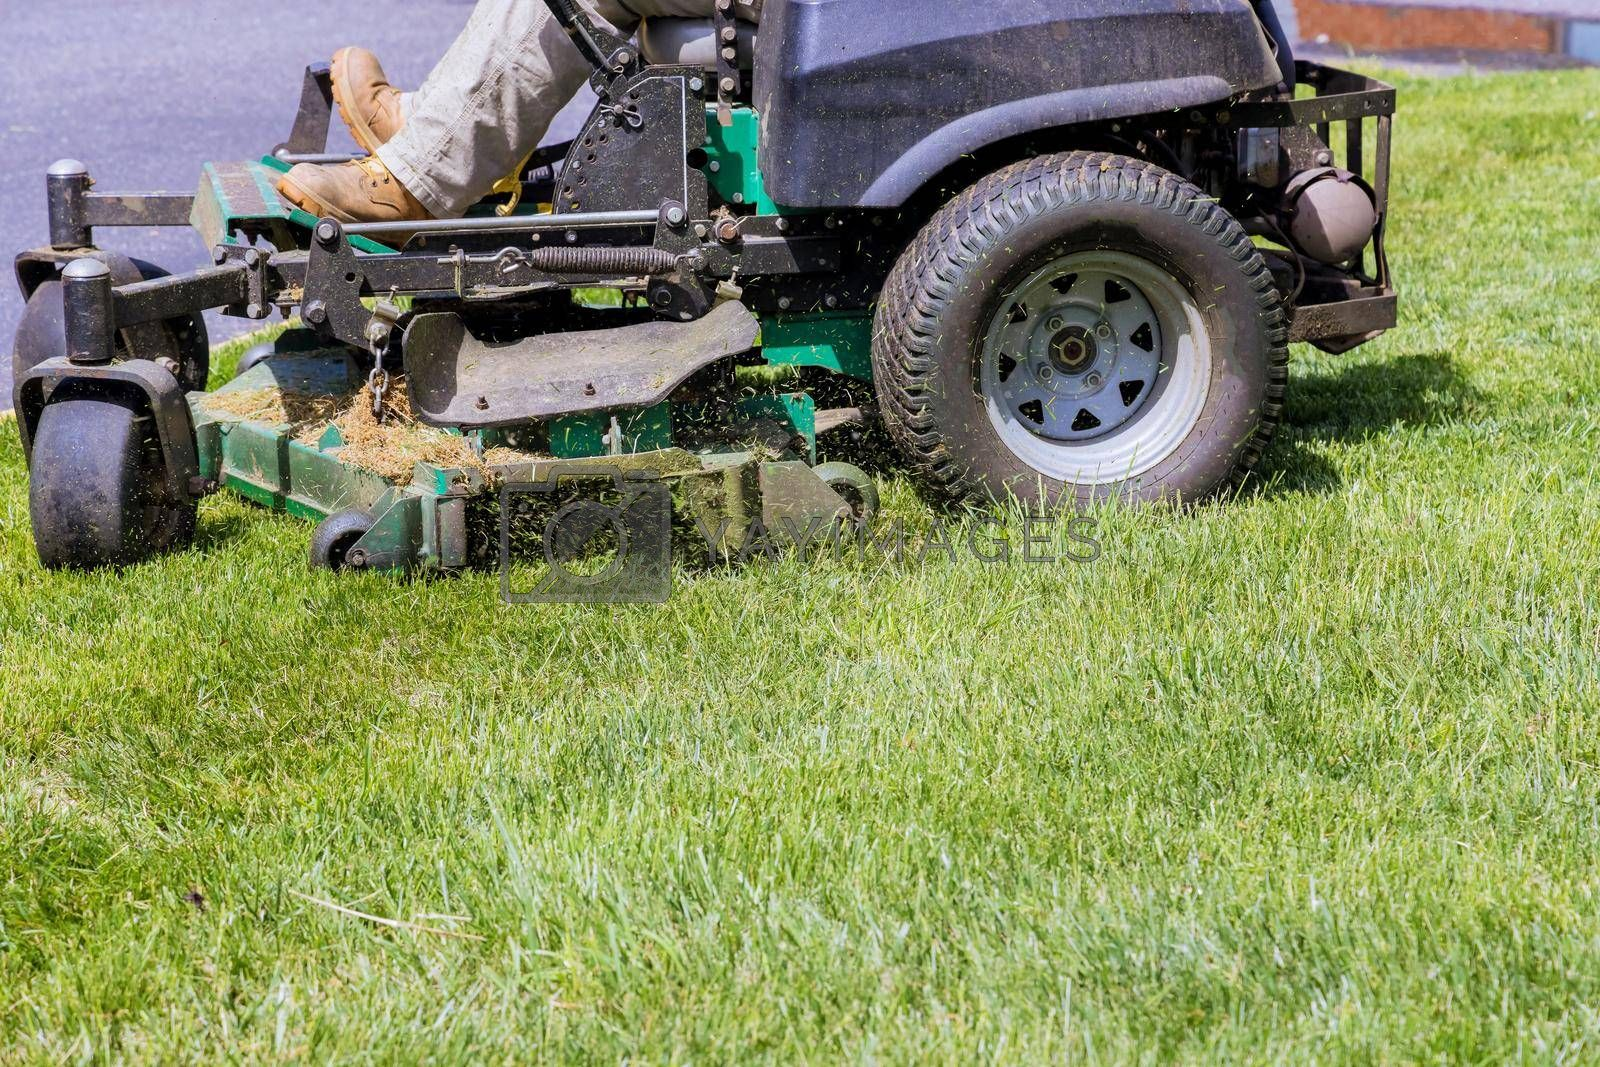 Royalty free image of Machine for cutting lawns on lawn mower on green grass in garden. by ungvar